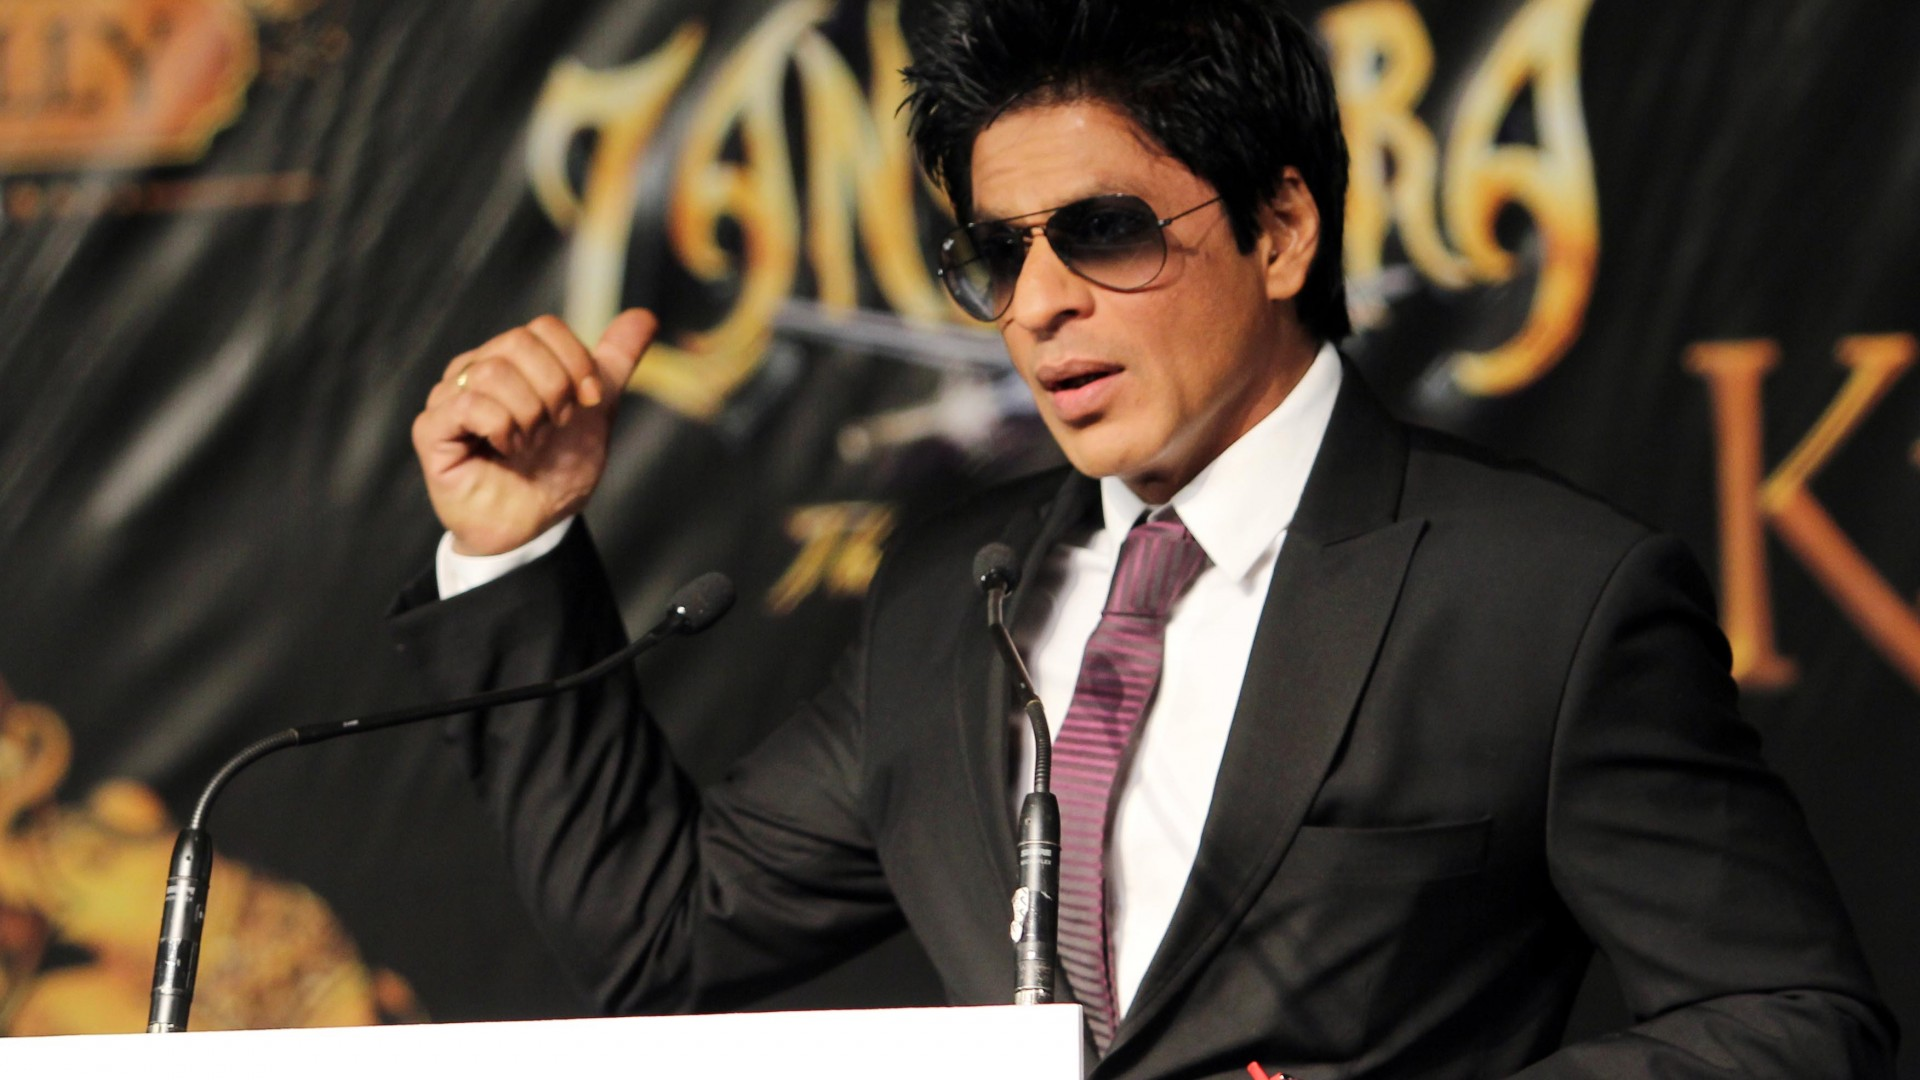 shahrukh khan hd wallpaper | hd latest wallpapers